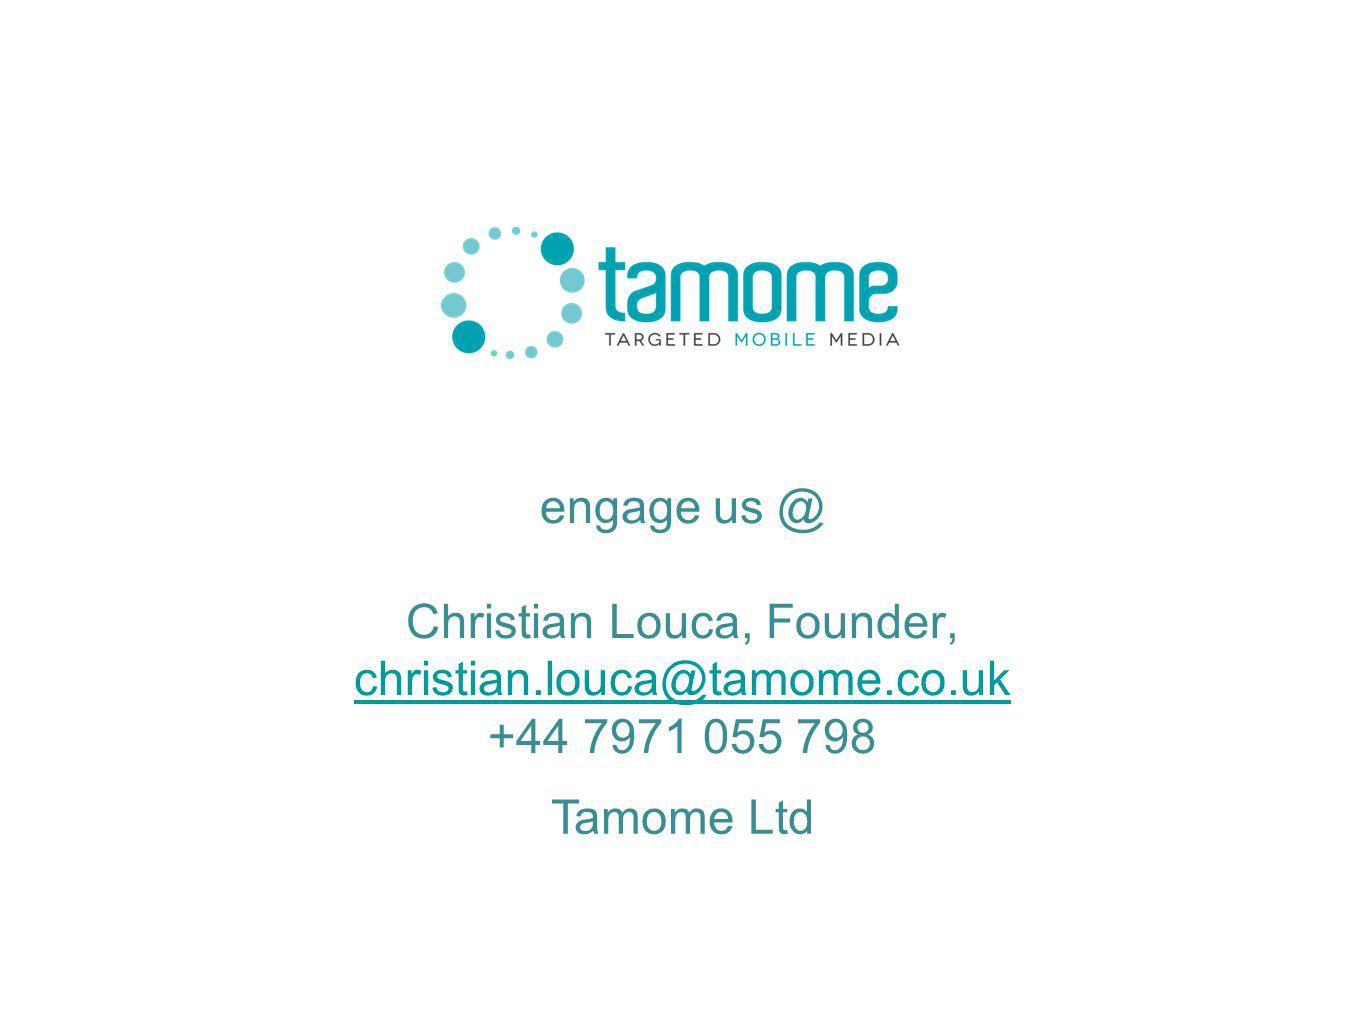 engage us @ Christian Louca, Founder, christian.louca@tamome.co.uk +44 7971 055 798 CONFIDENTIAL Tamome Ltd